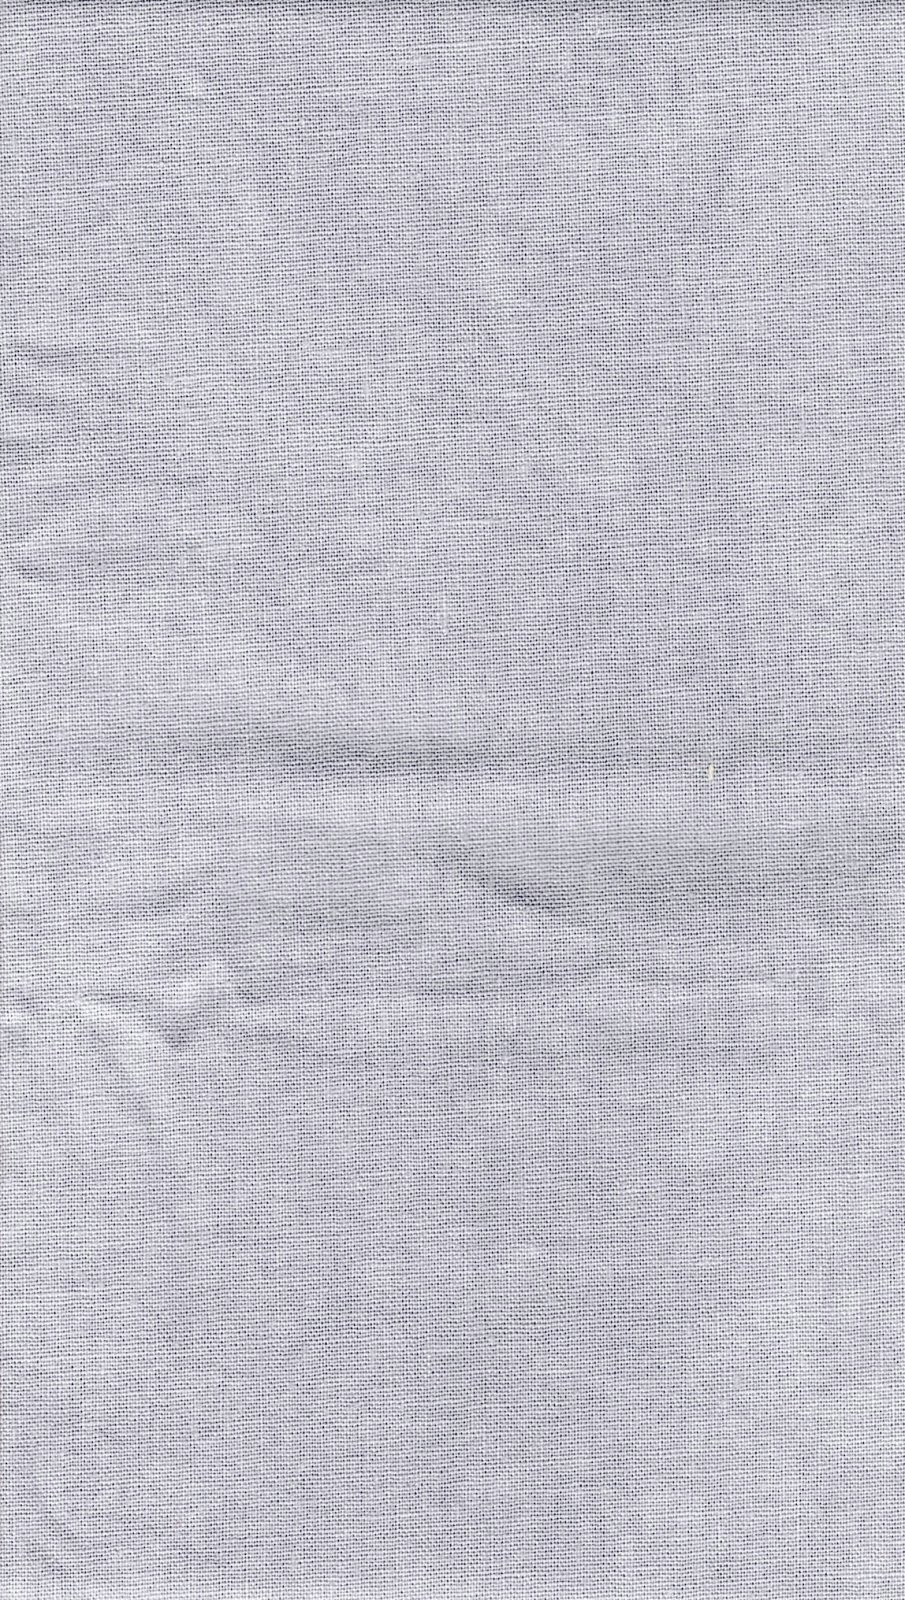 Stone Hand-Dyed Linen